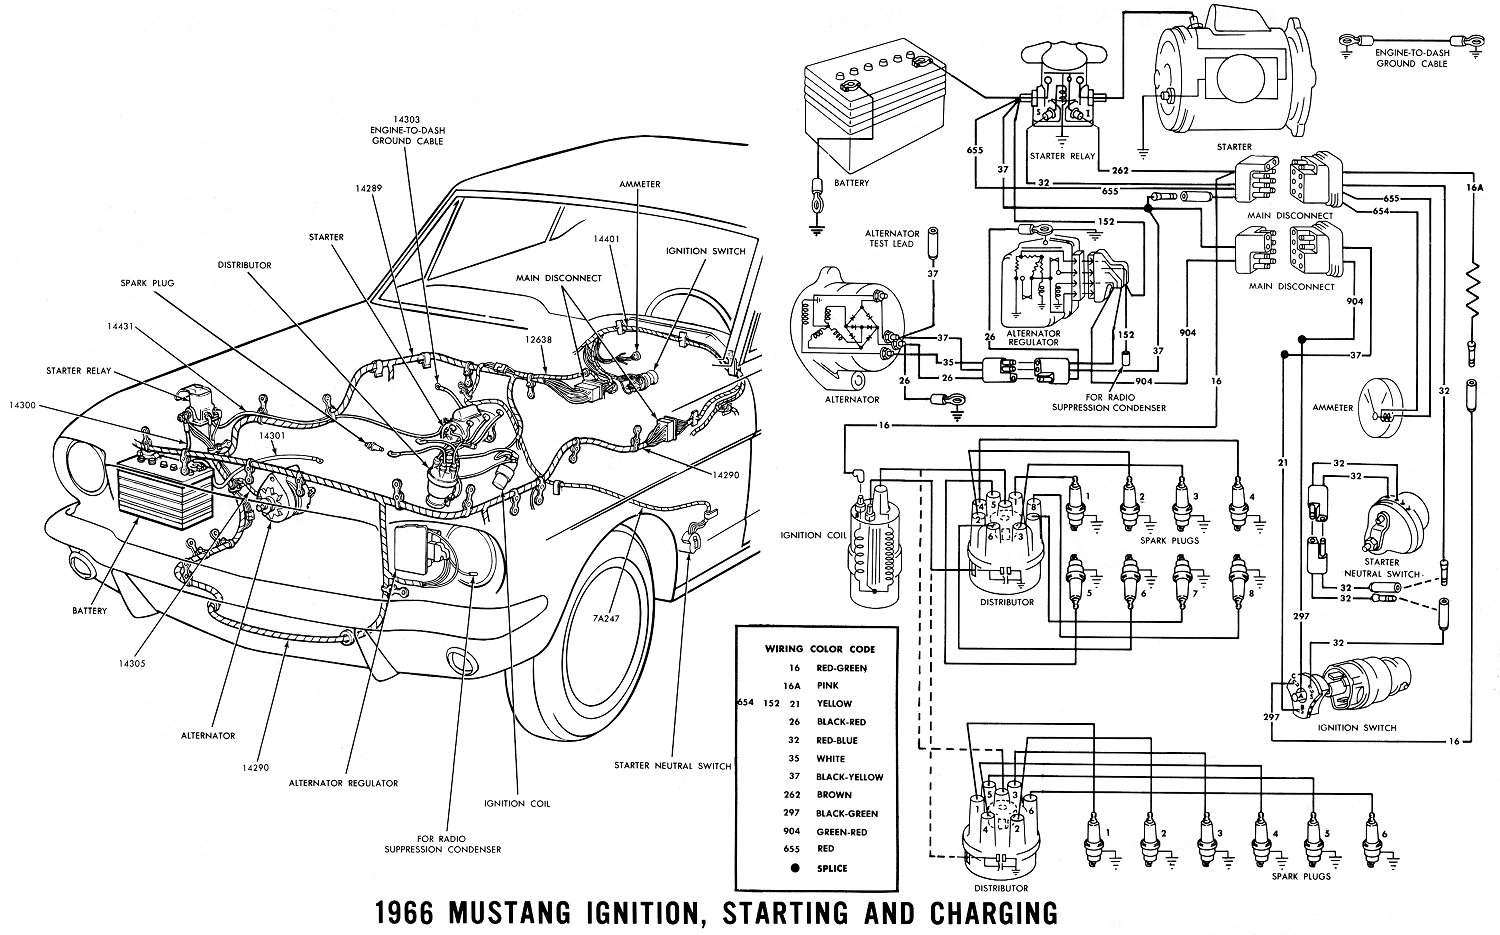 66ignit 1966 mustang wiring diagrams average joe restoration Ford E 350 Wiring Diagrams at love-stories.co